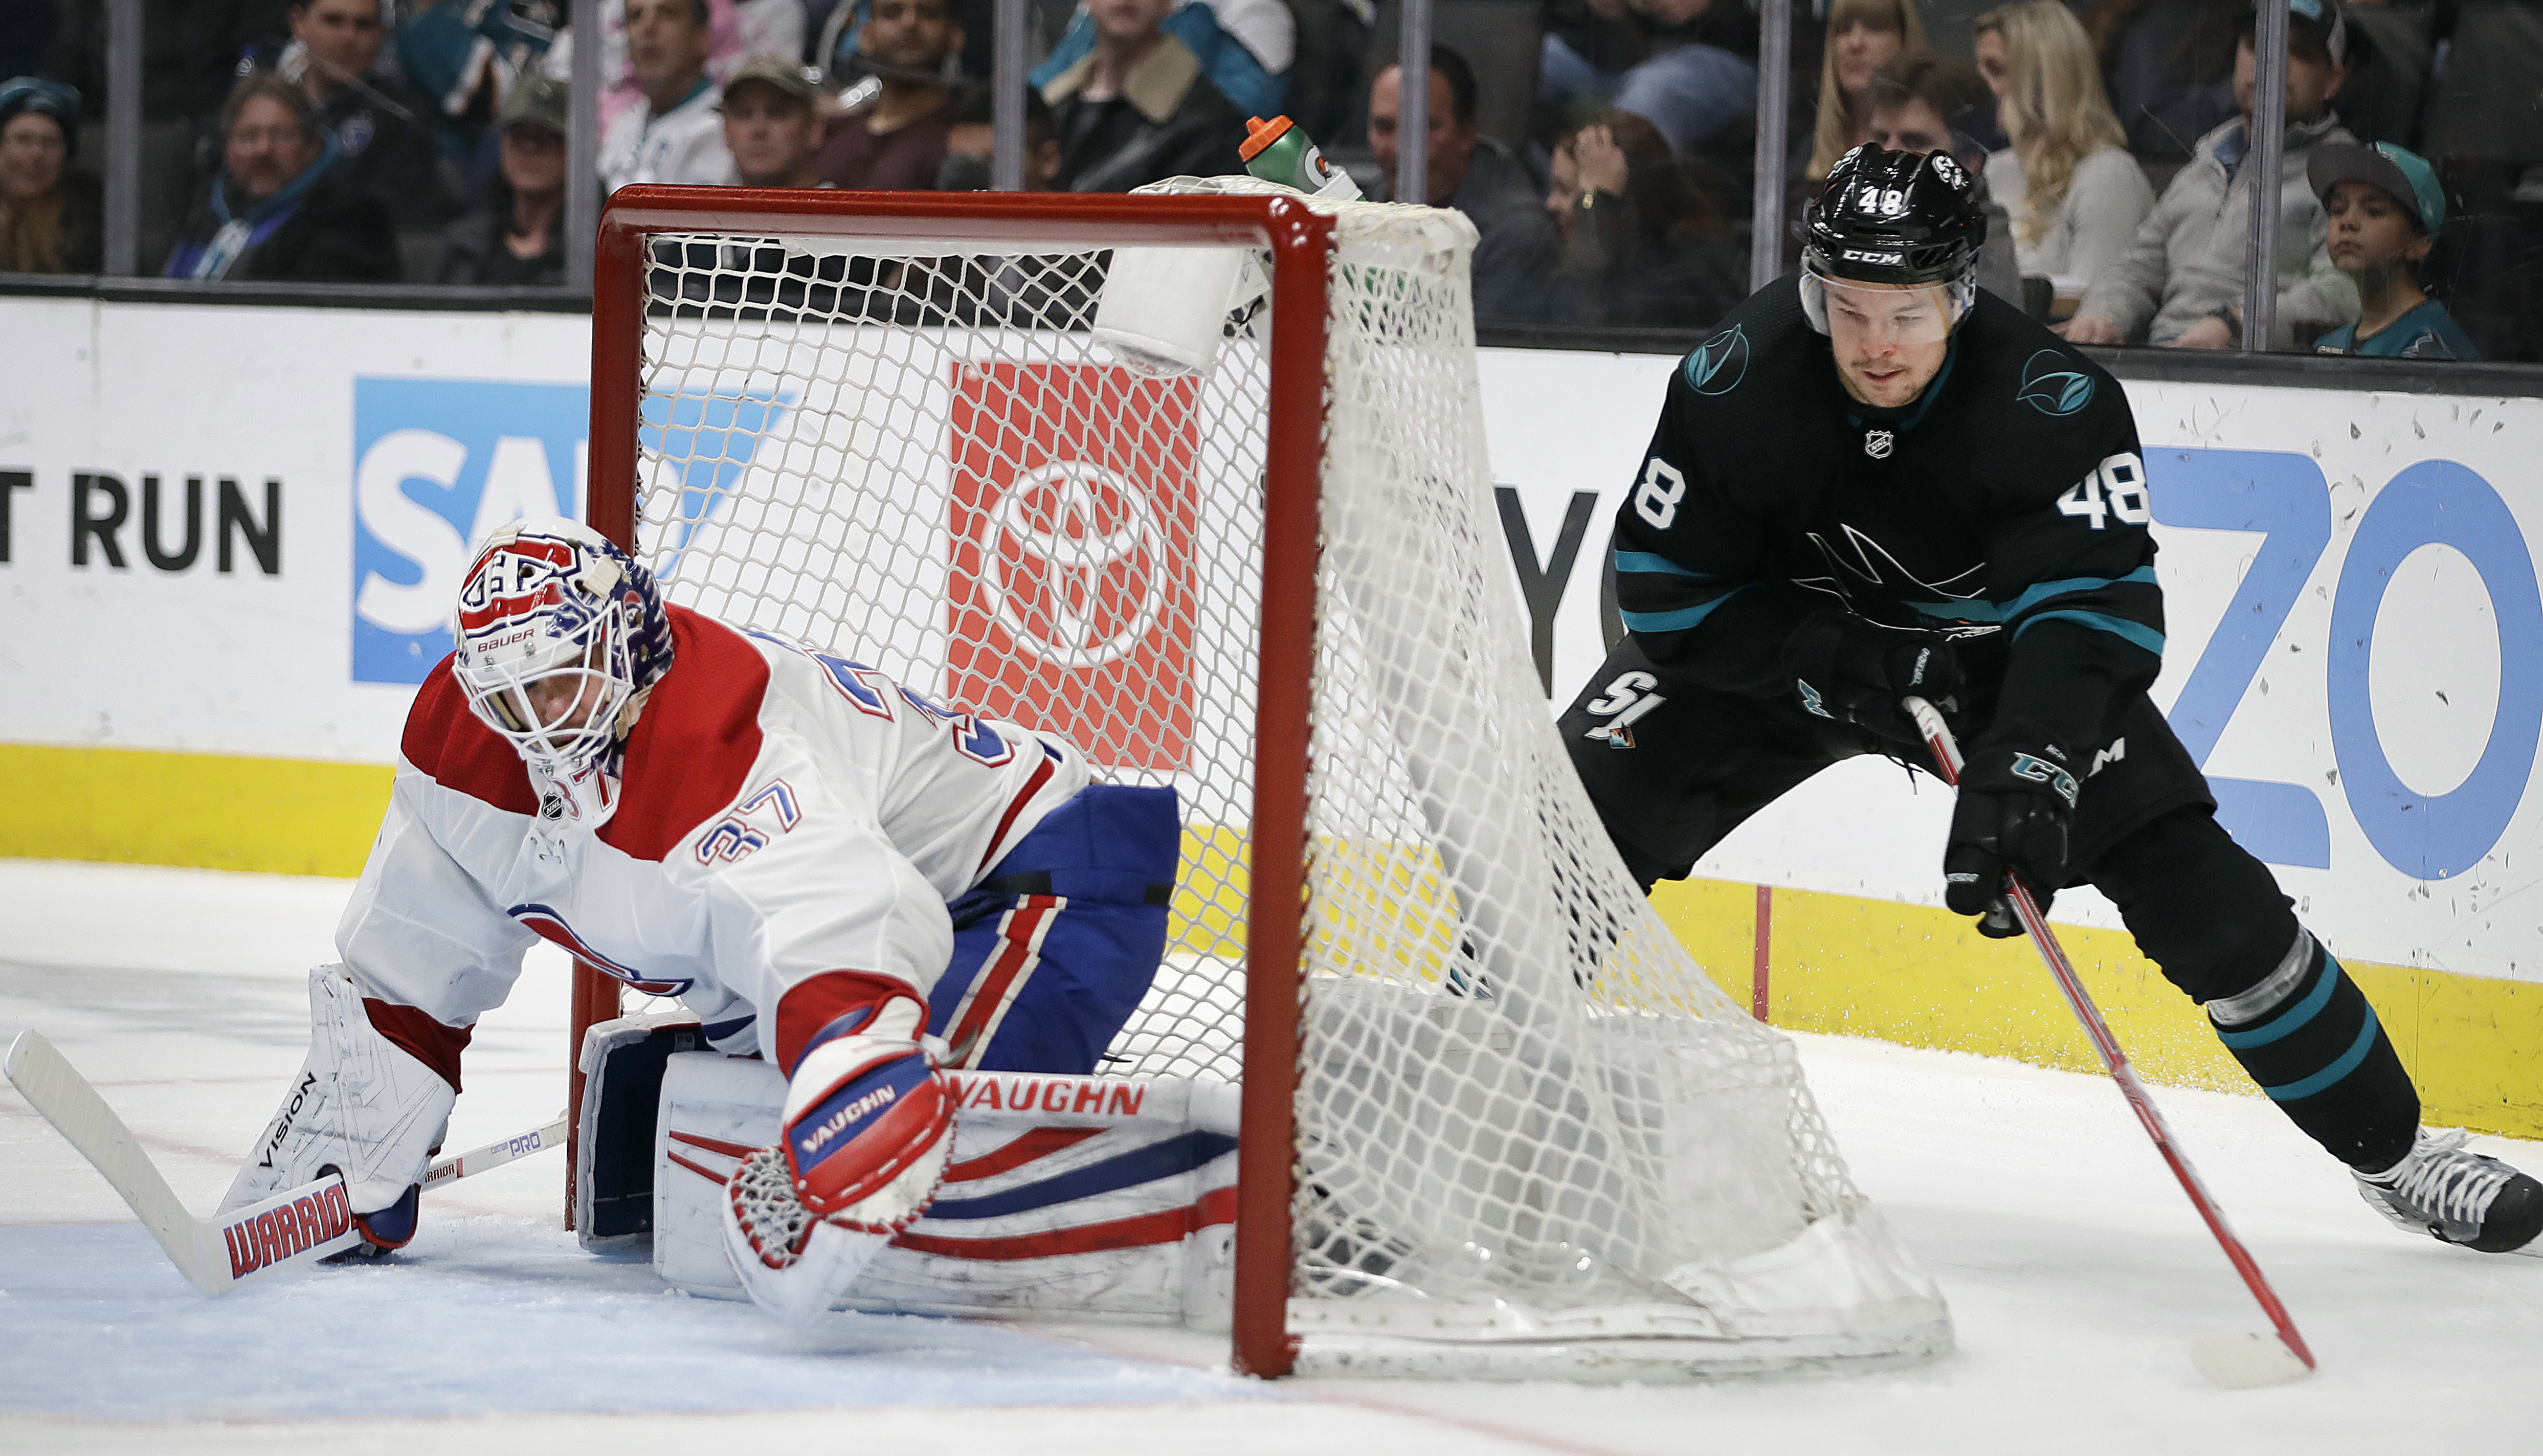 Hertl's 30th goal leads Sharks past Canadiens 5-2